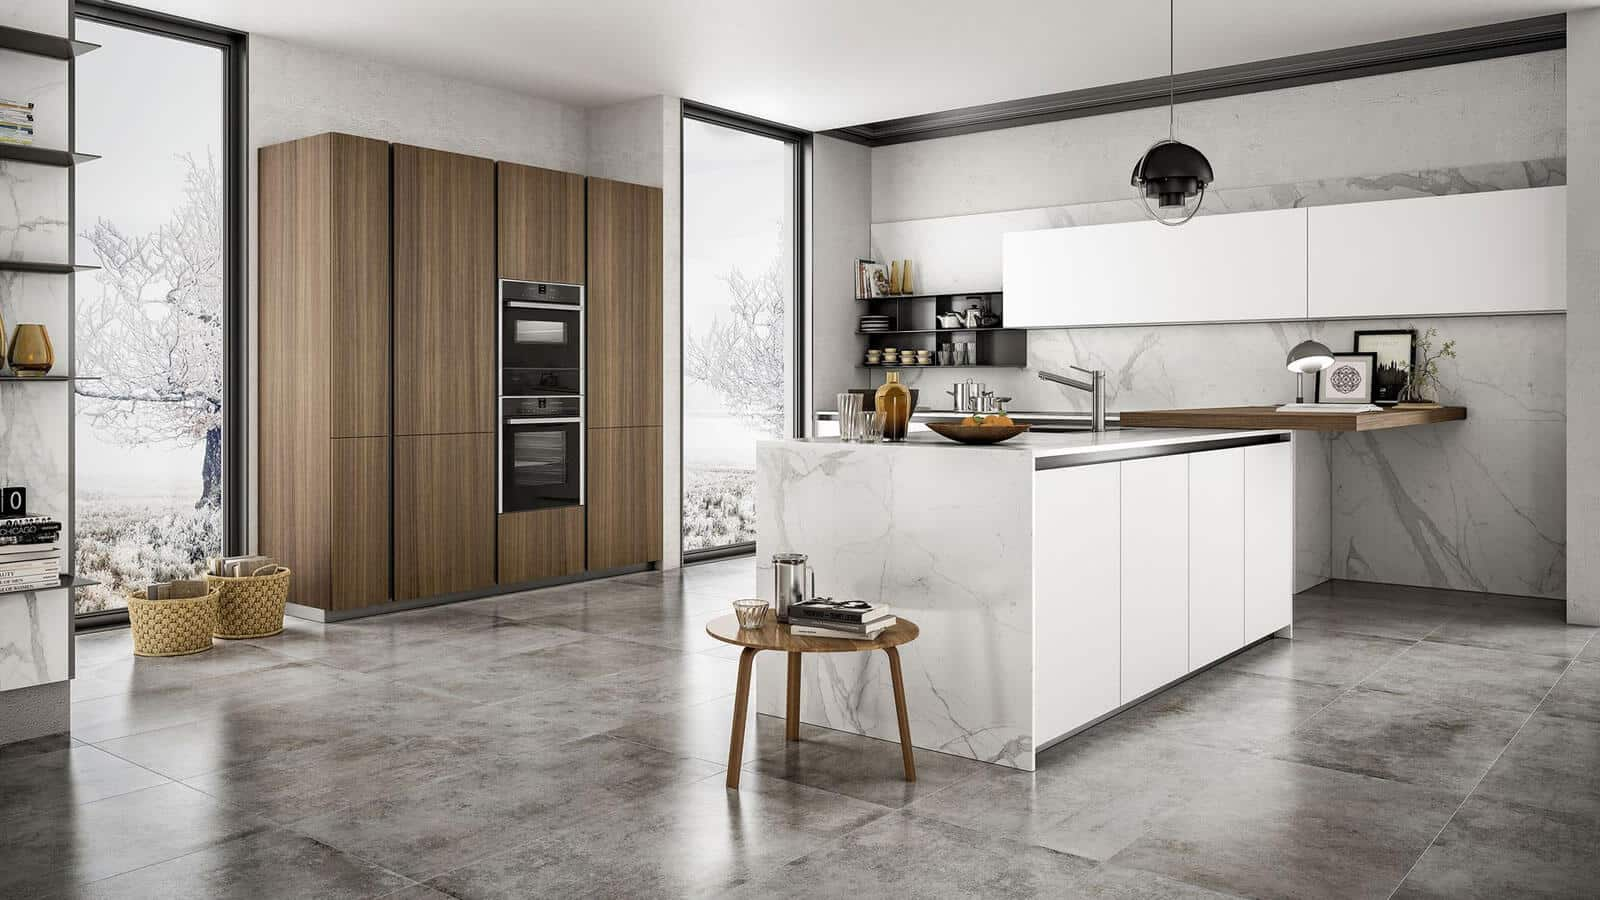 Cuisine Equipee Fabrication Italienne Optimal Annecy